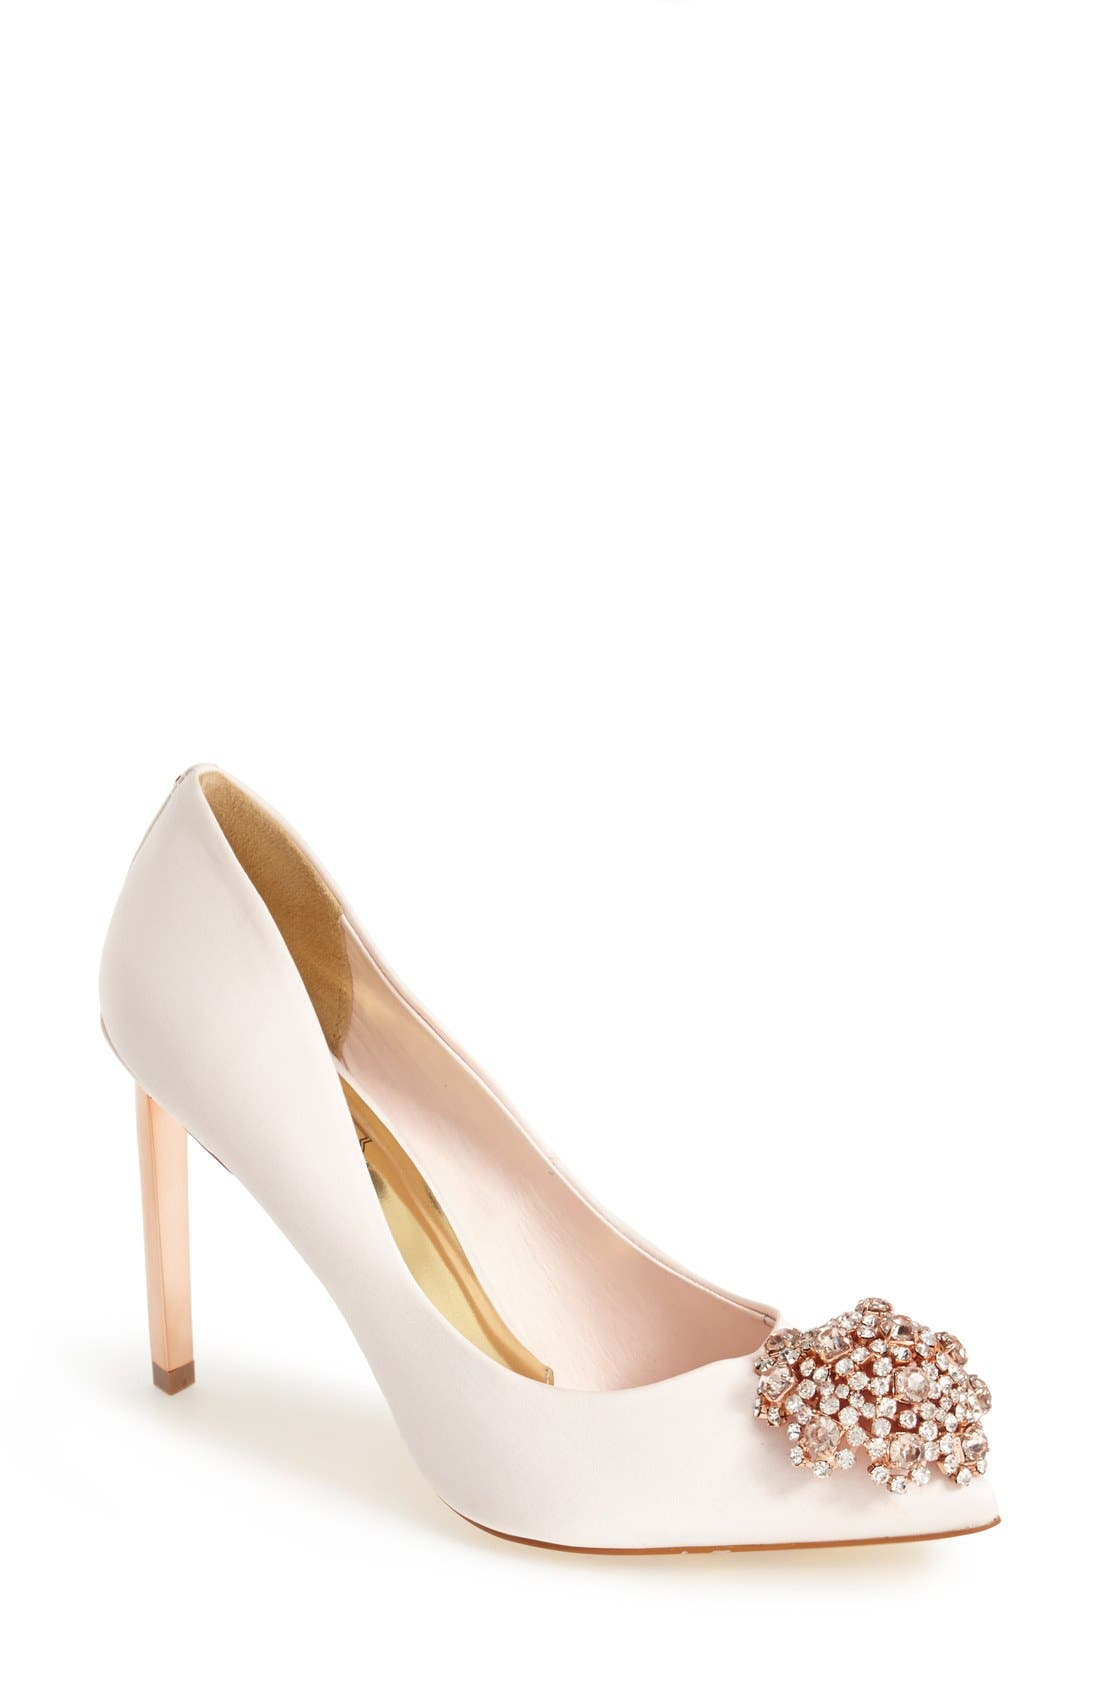 'Peetch' Pointy Toe Pump,                             Main thumbnail 7, color,